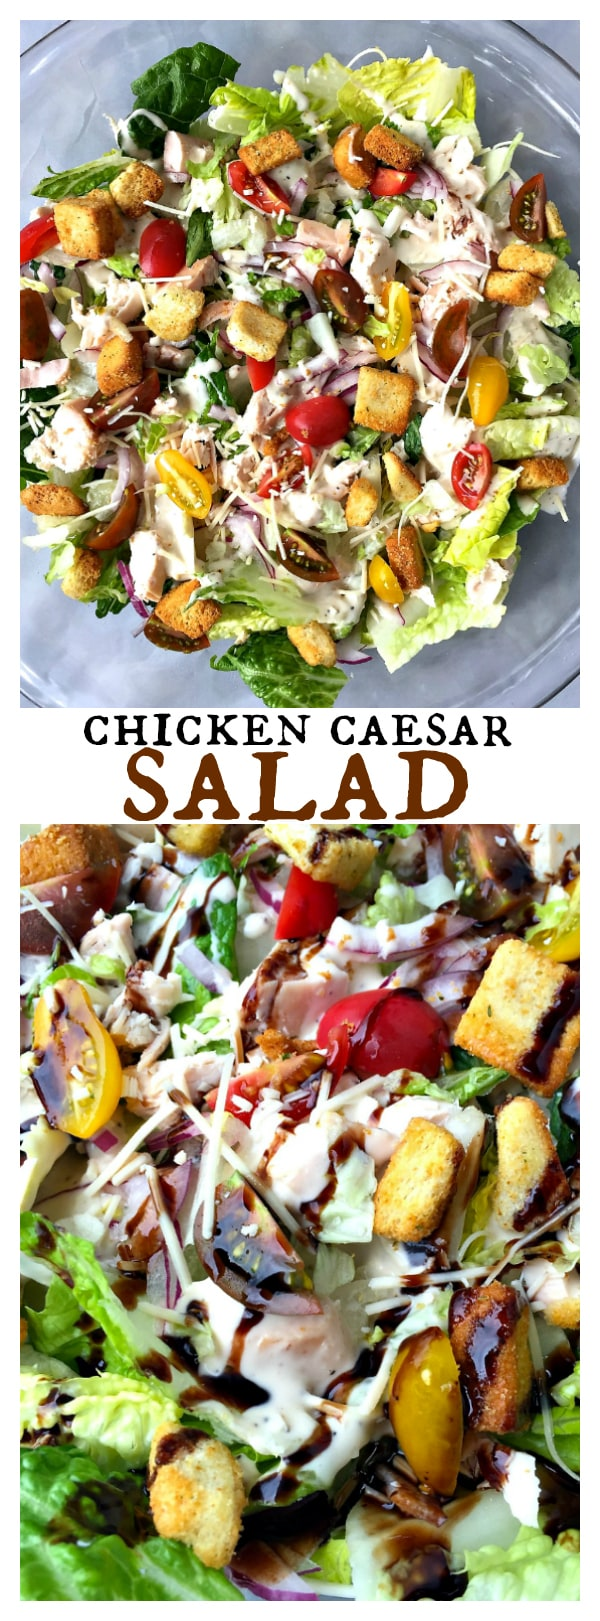 Chicken Caesar Salad with homemade dressing